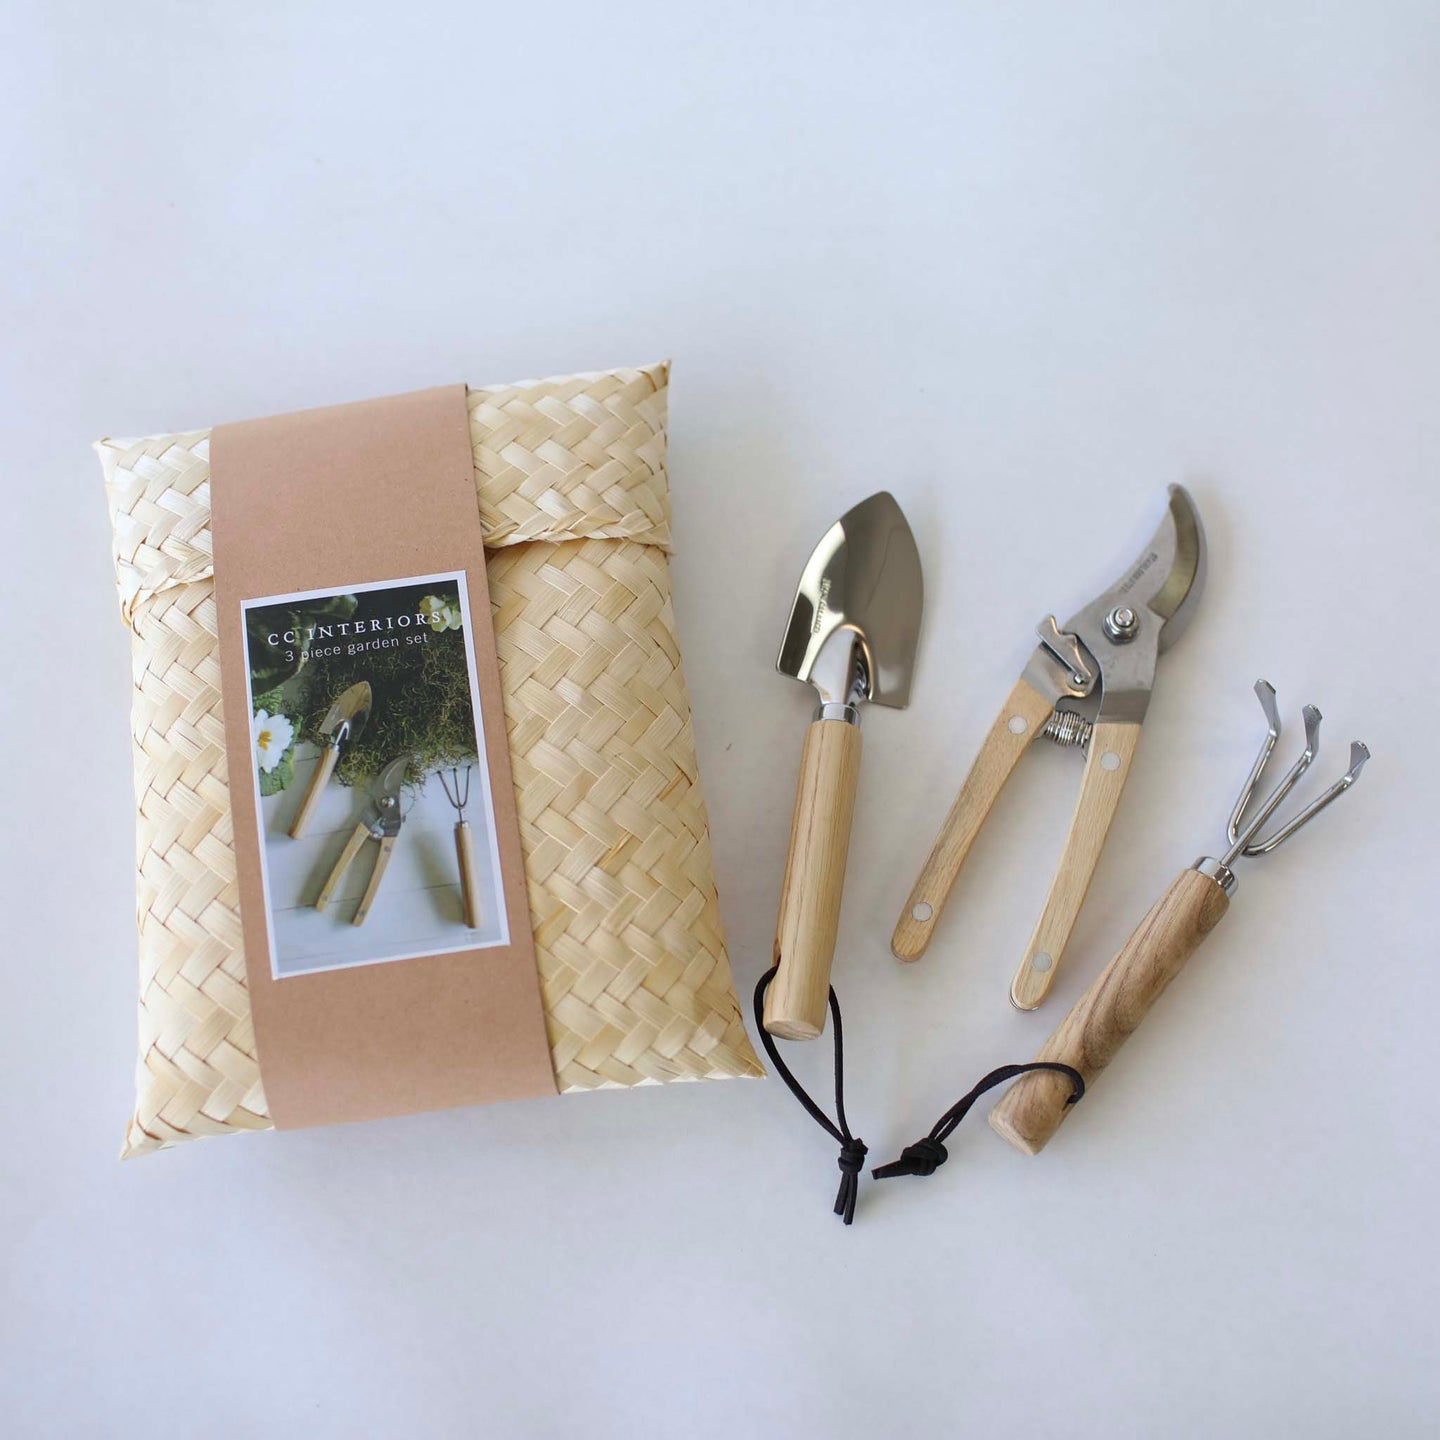 Gardening set presented in Kete